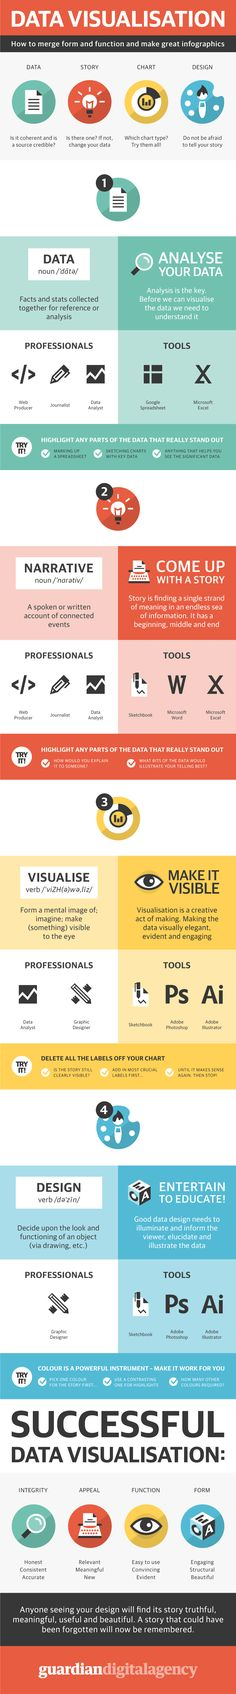 https://social-media-strategy-template.blogspot.com/ How to make an infographic worth a thousand words - The following infographic breaks down the basics of data visualization. It shows how beginners can merge form and function, and design meaningful infographics.